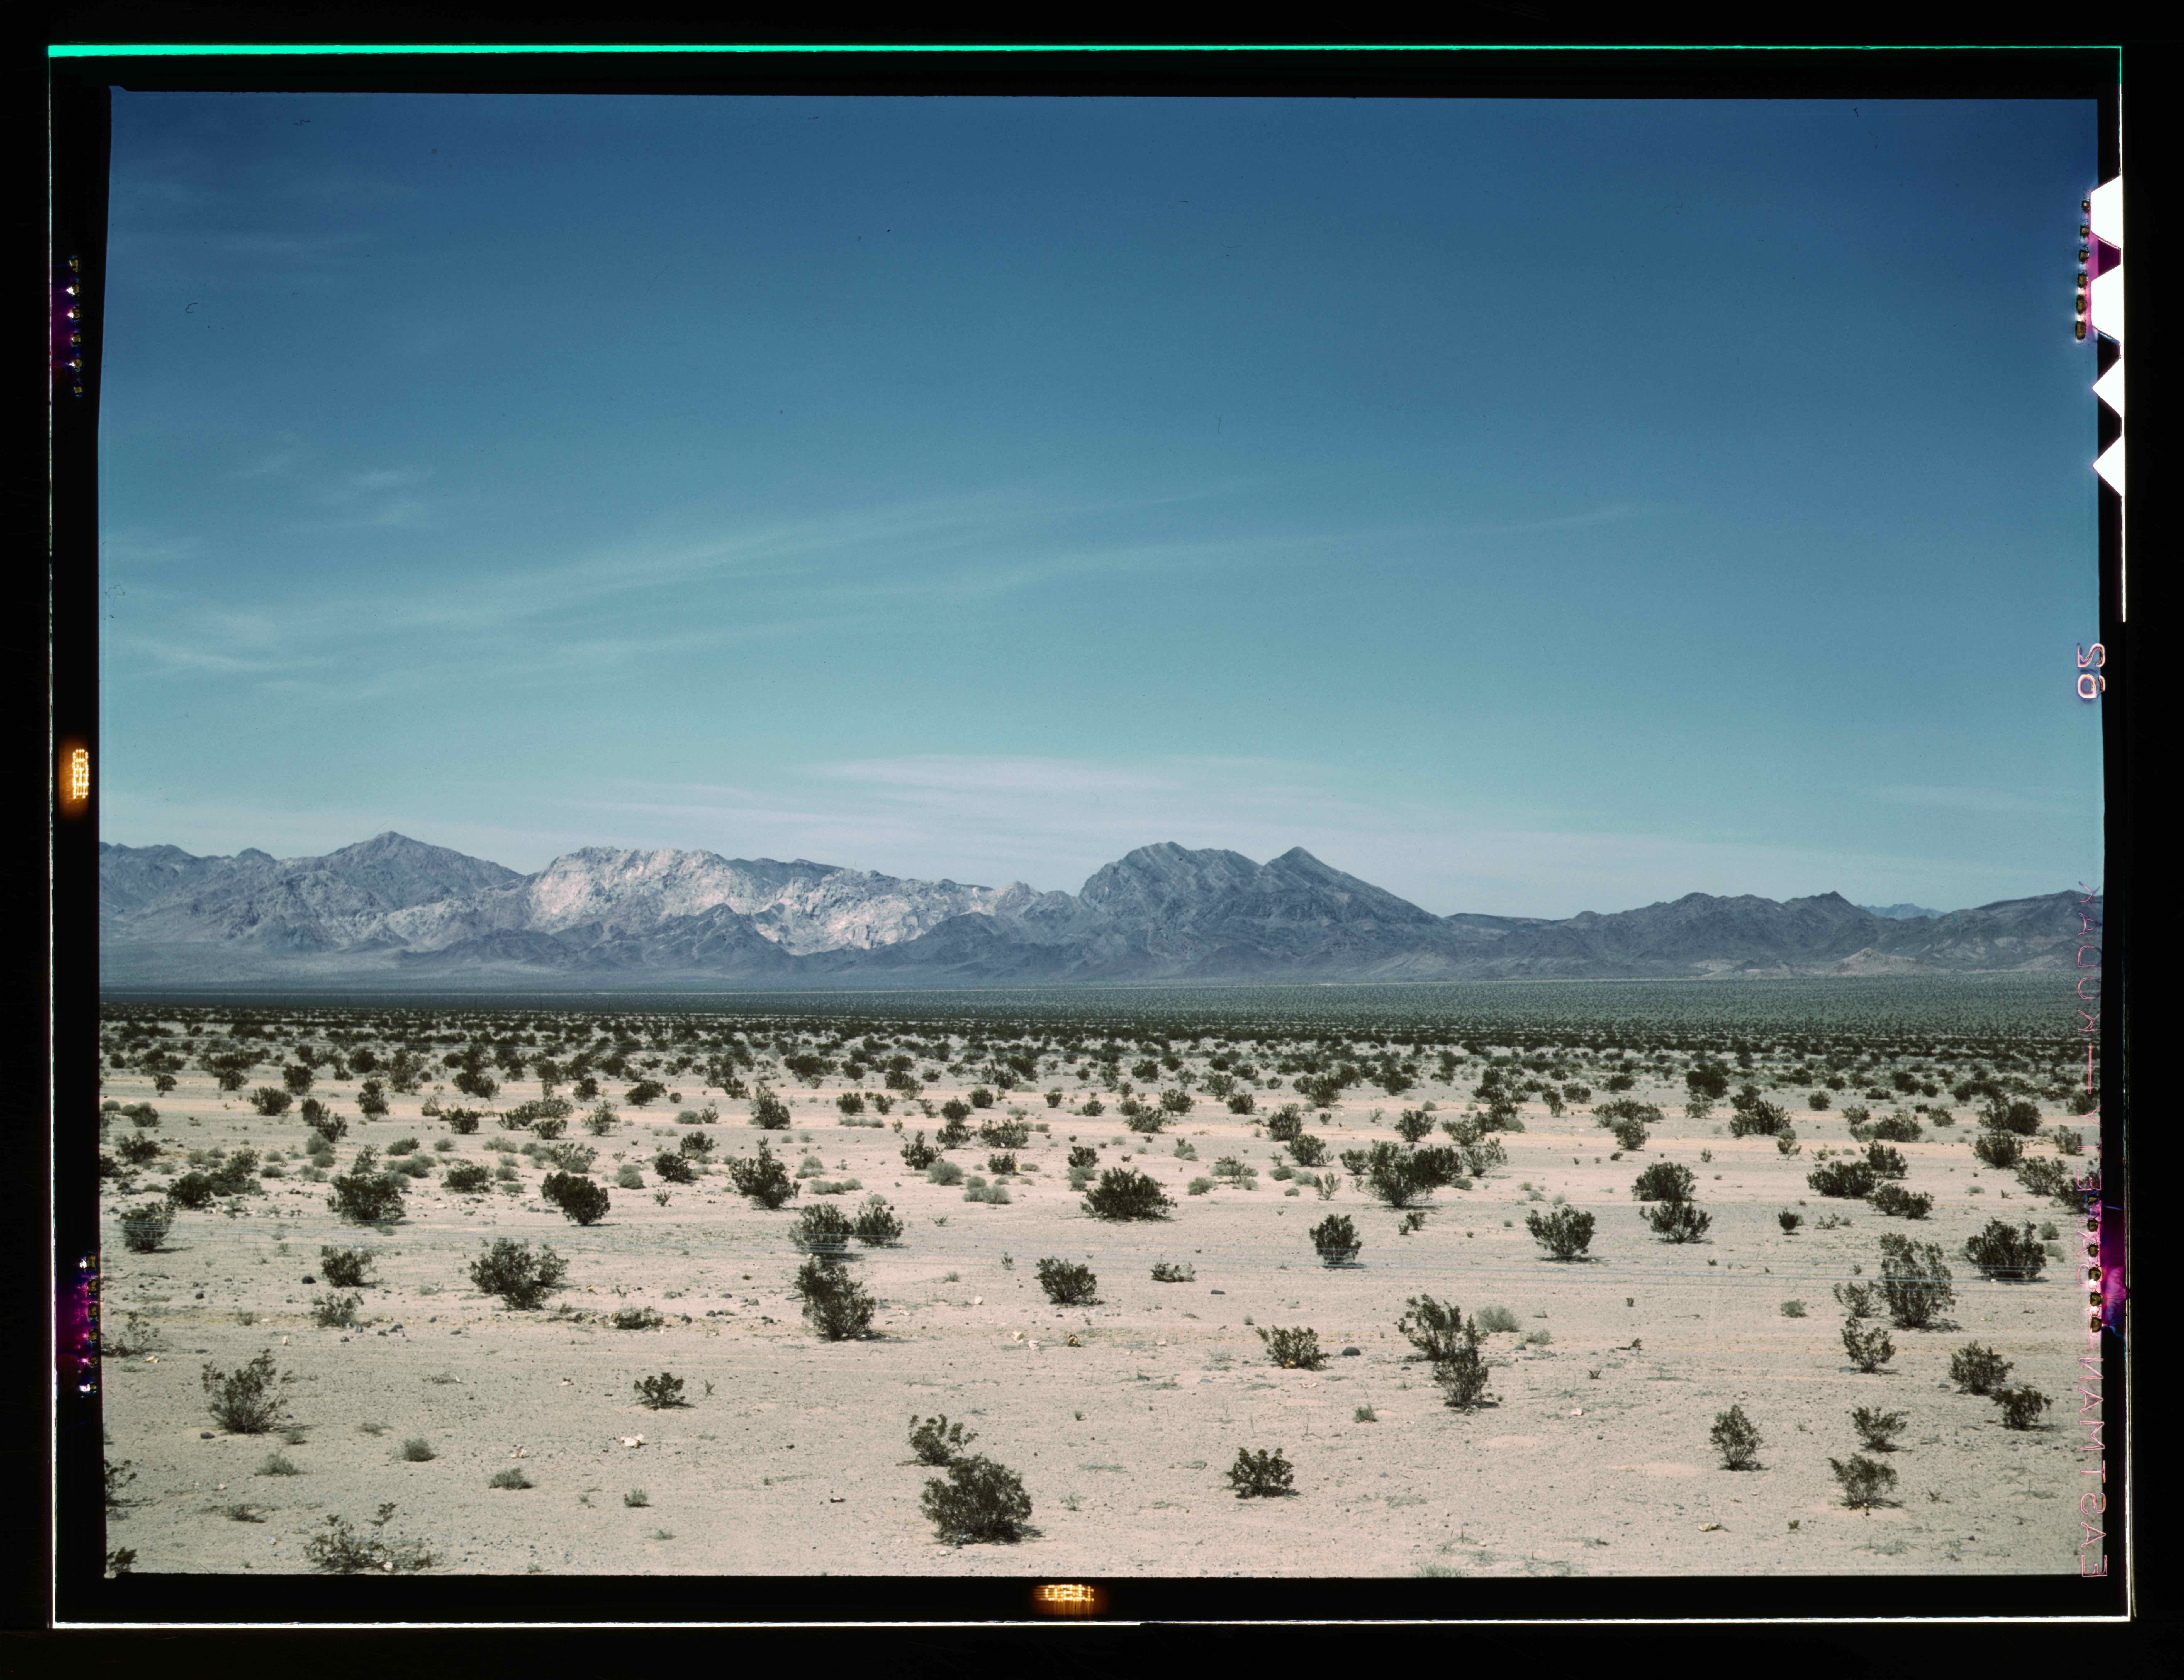 a desert with a mountain range in the distance